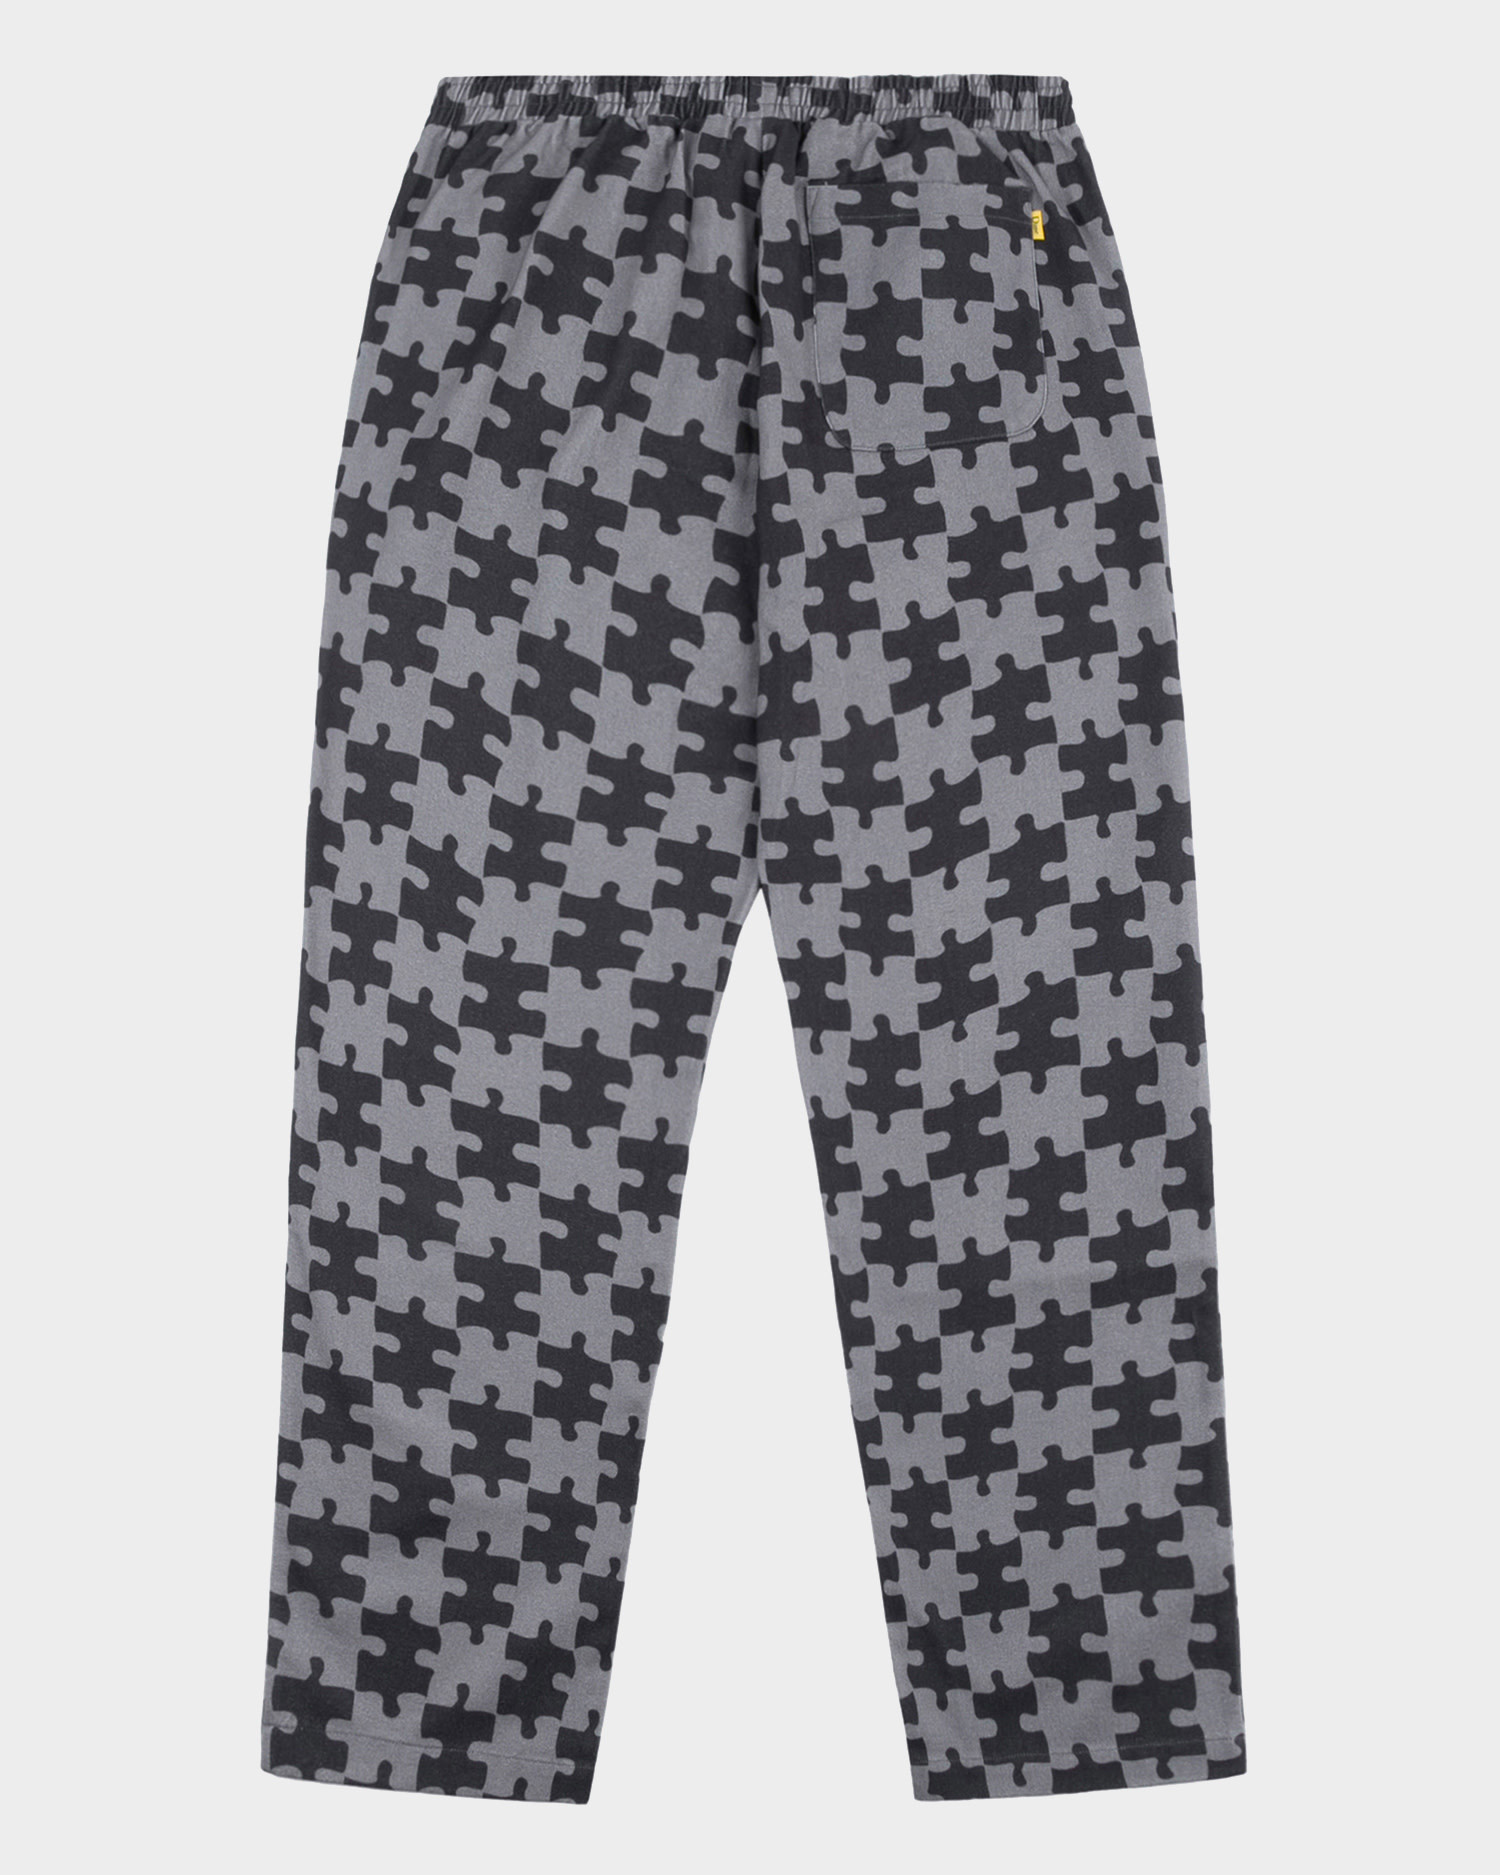 Dime Puzzle Twill Pants Charcoal